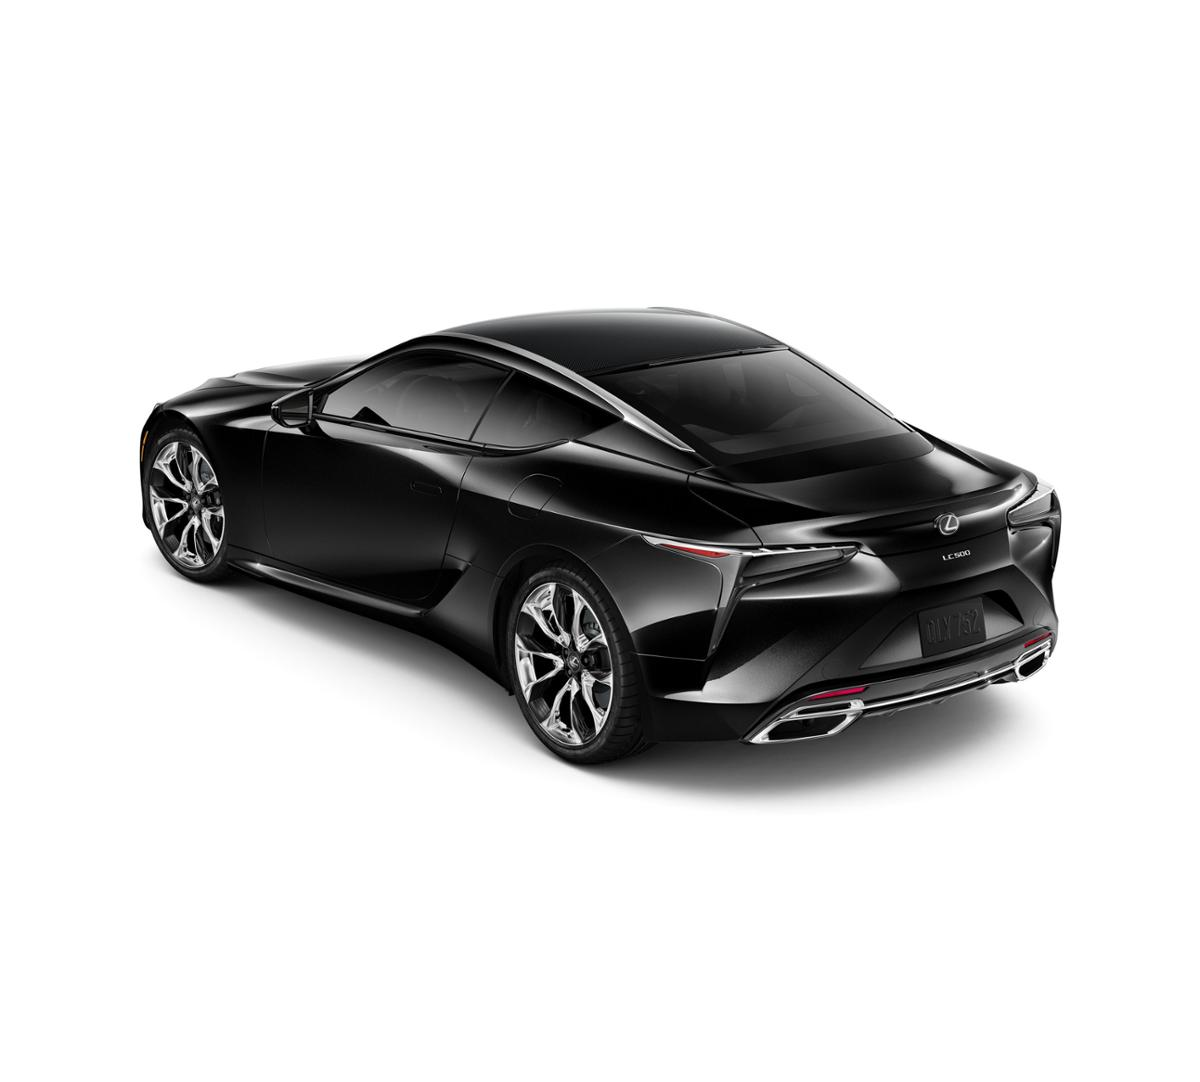 Lexus Dealership In Va: Caviar 2018 Lexus LC 500 Alexandria